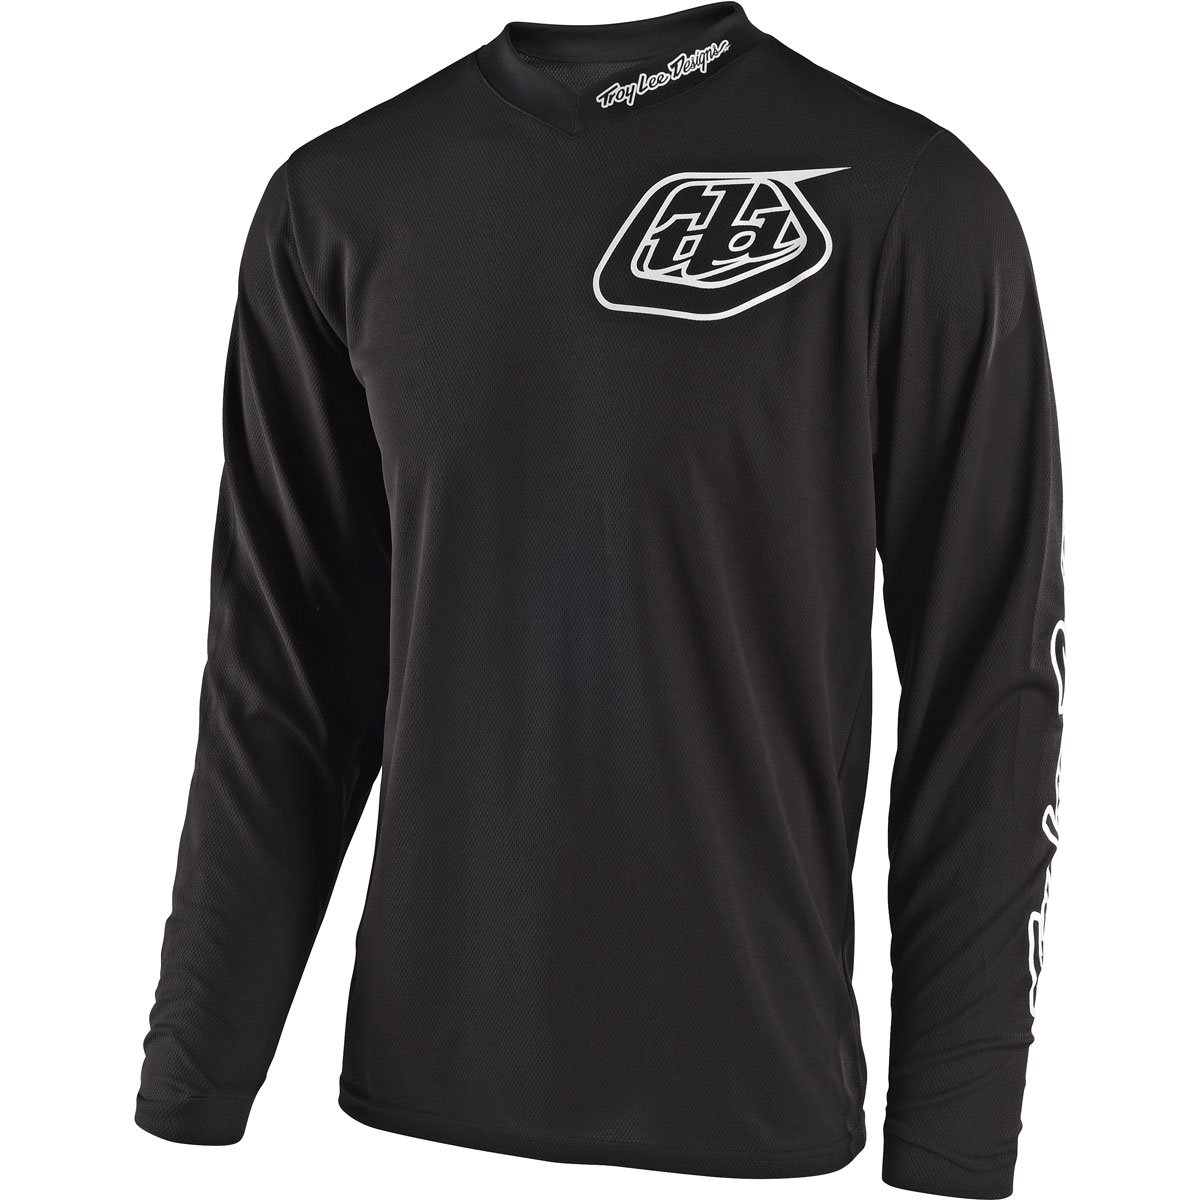 Troy Lee Designs Unisex GP Mono Jersey (Black, ADULT  XX-Large) by Troy Lee Designs (Image #1)